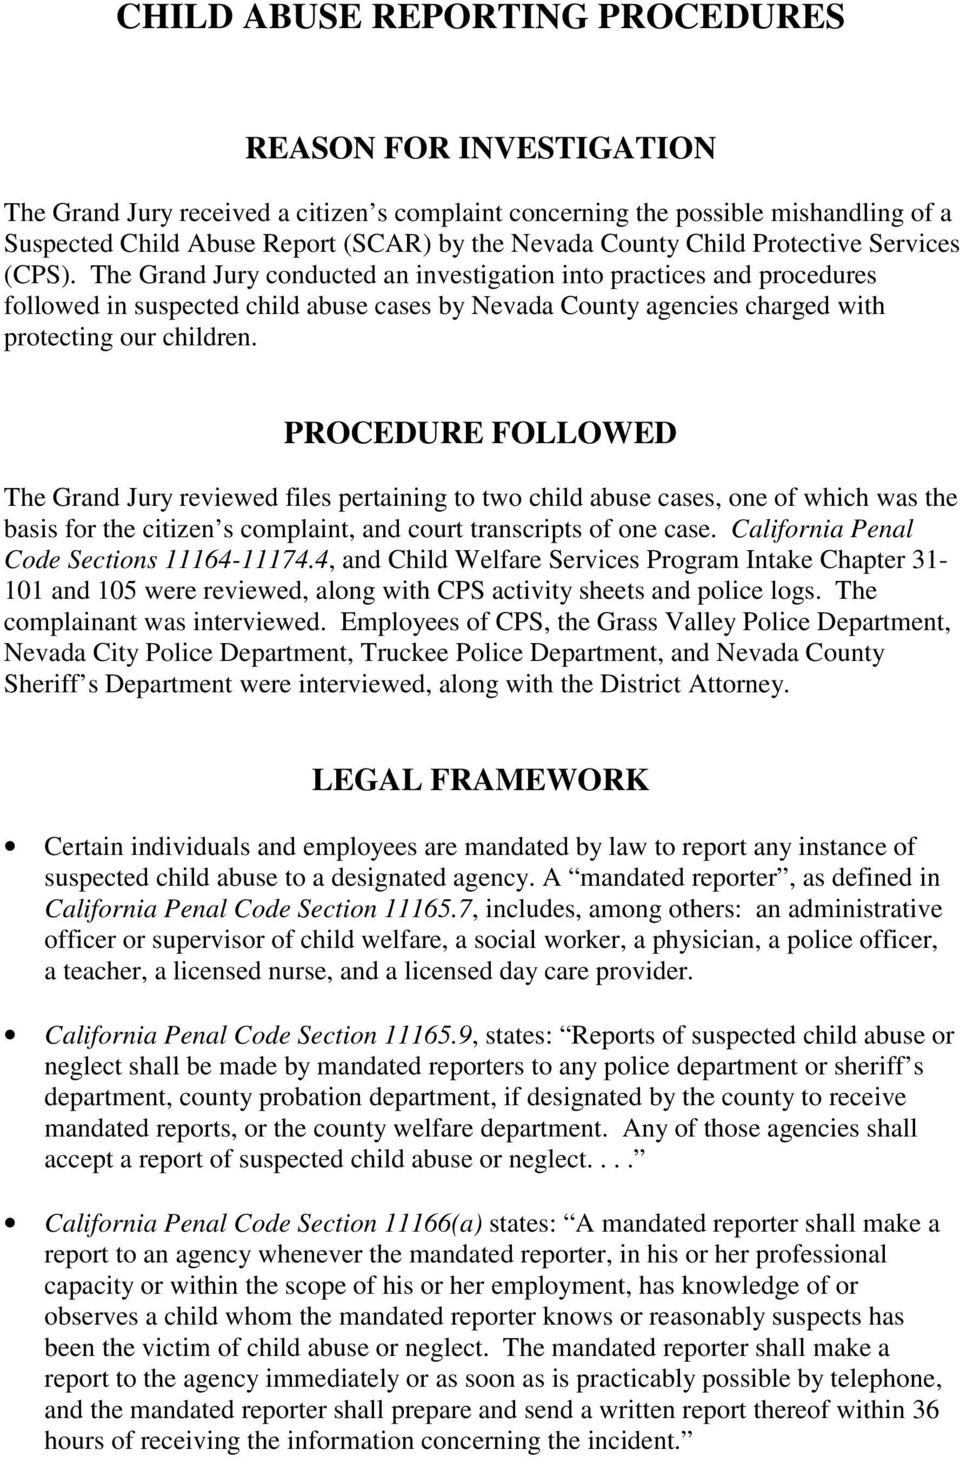 The Grand Jury conducted an investigation into practices and procedures followed in suspected child abuse cases by Nevada County agencies charged with protecting our children.